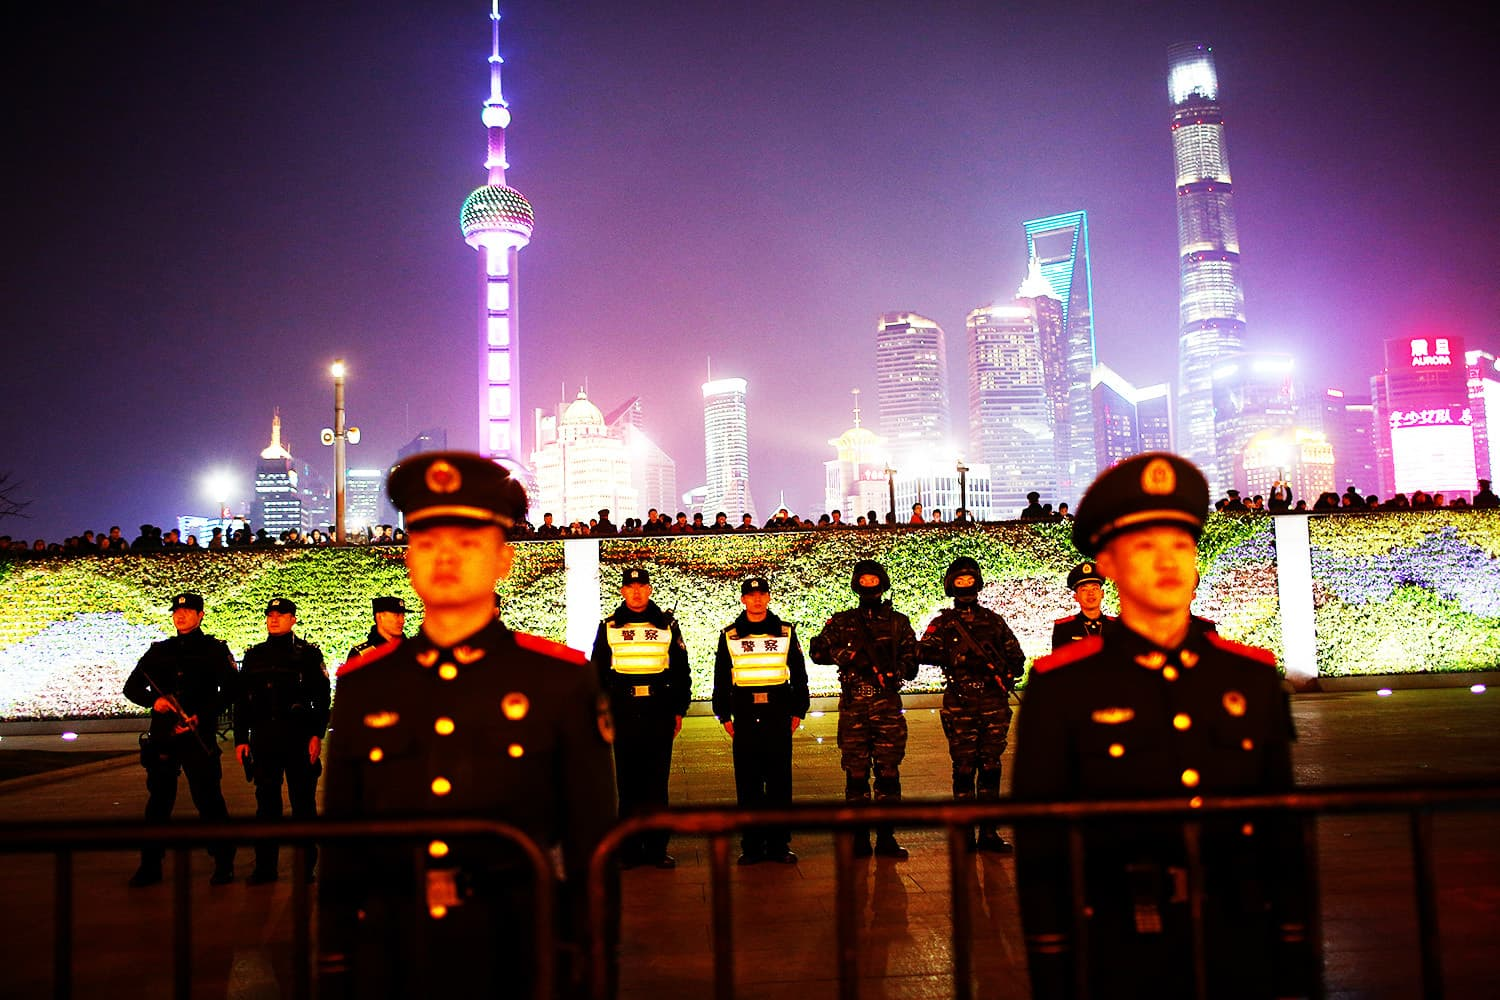 Police officers stand guard at the location where a stampede incident occurred during New Year celebrations two years ago, on the Bund in Shanghai, China.—Reuters